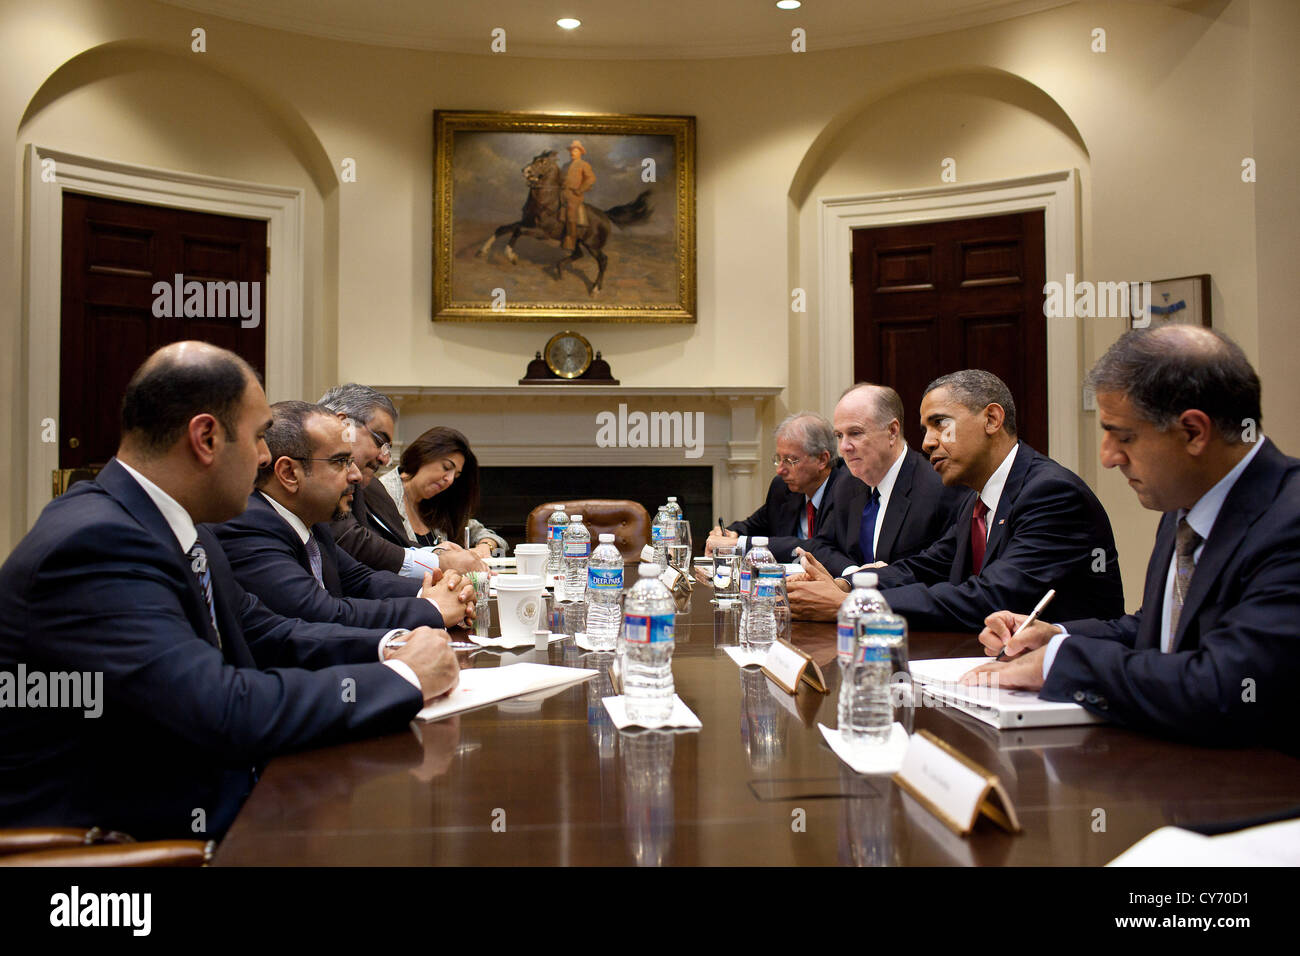 US President Barack Obama drops by a meeting between National Security Advisor Tom Donilon and Crown Prince Salman - Stock Image